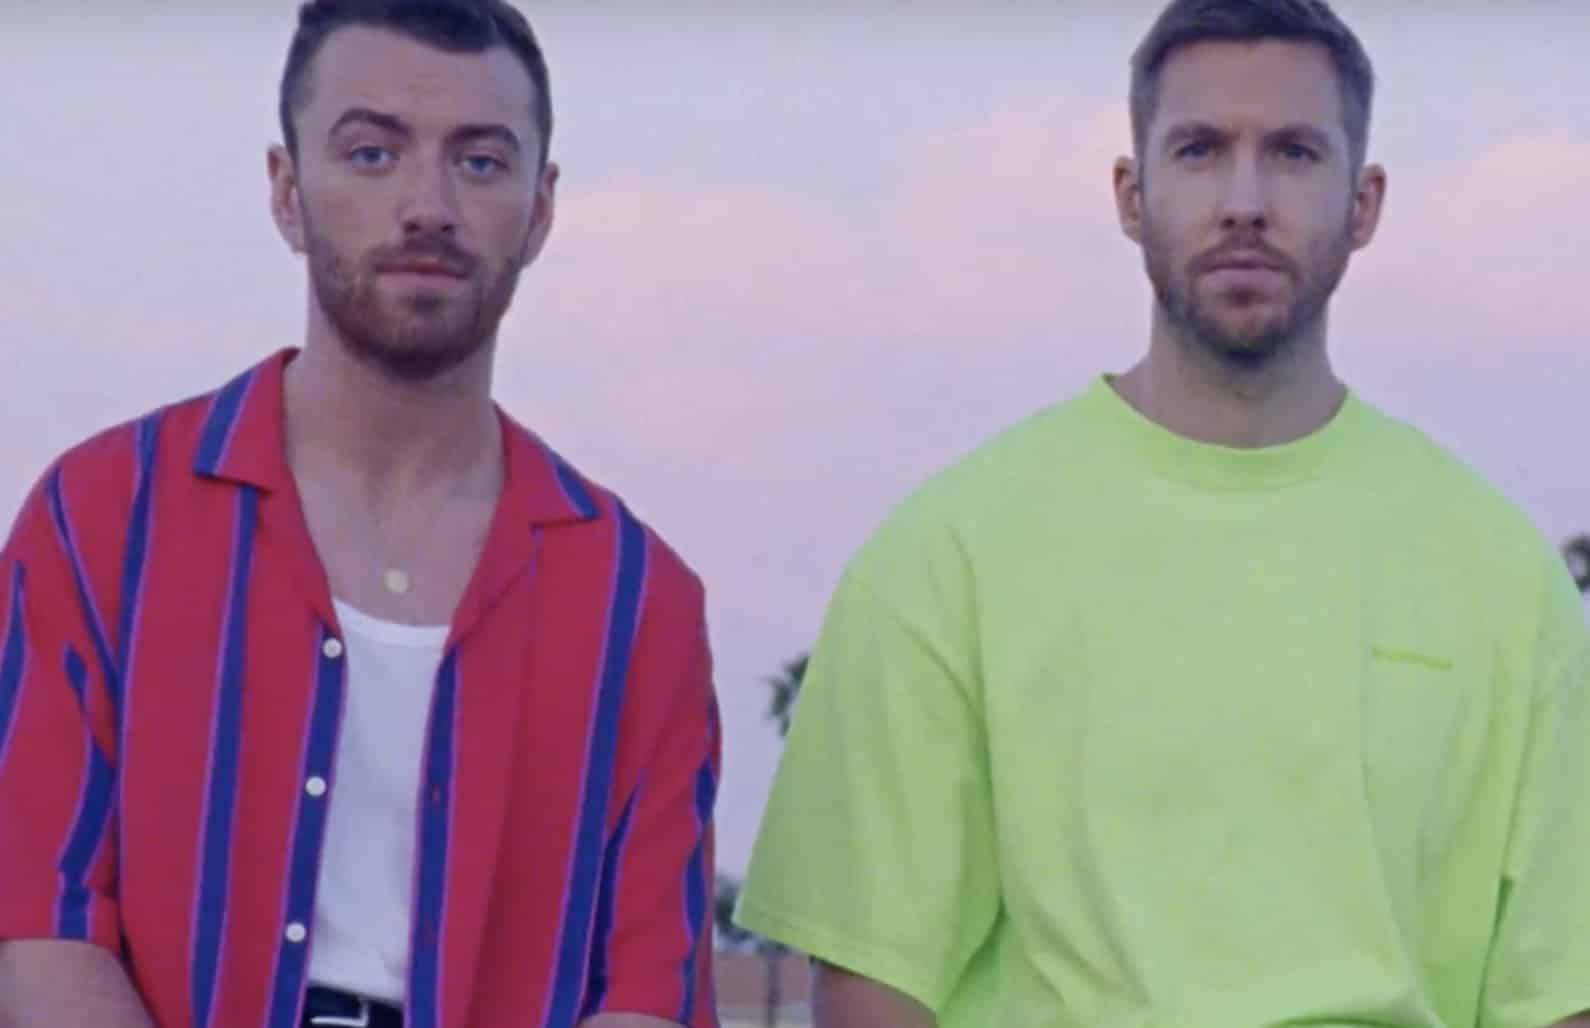 Drops And Latest Video Sam For Their Calvin Harris Smith lFucT3K1J